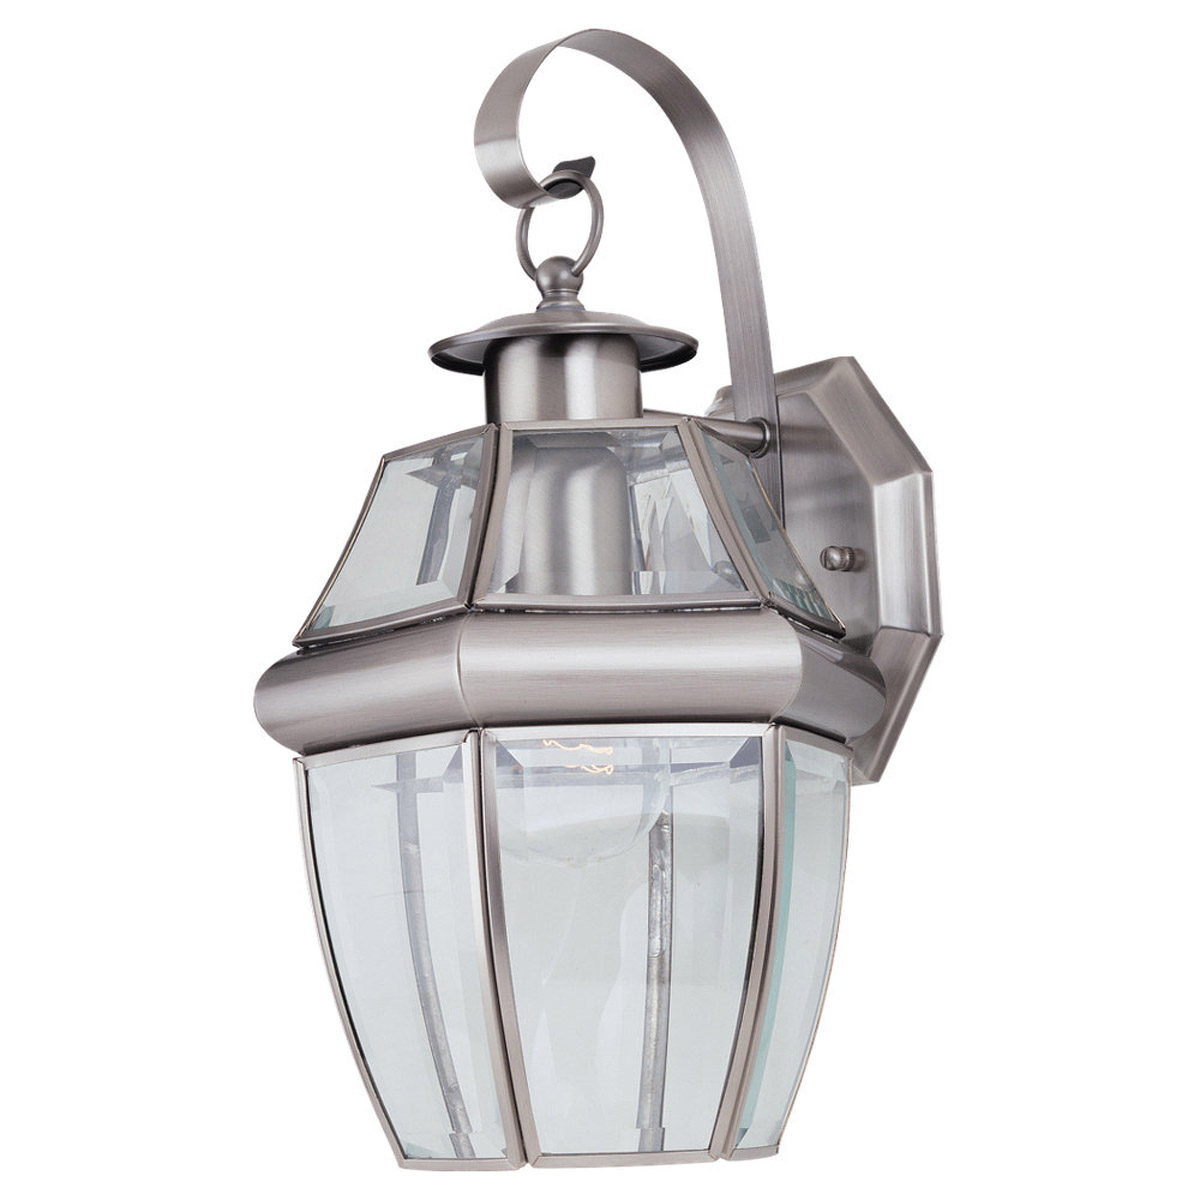 Sea Gull 8037-965 Lancaster 1 Light 12 inch Antique Brushed Nickel Outdoor Wall Lantern photo